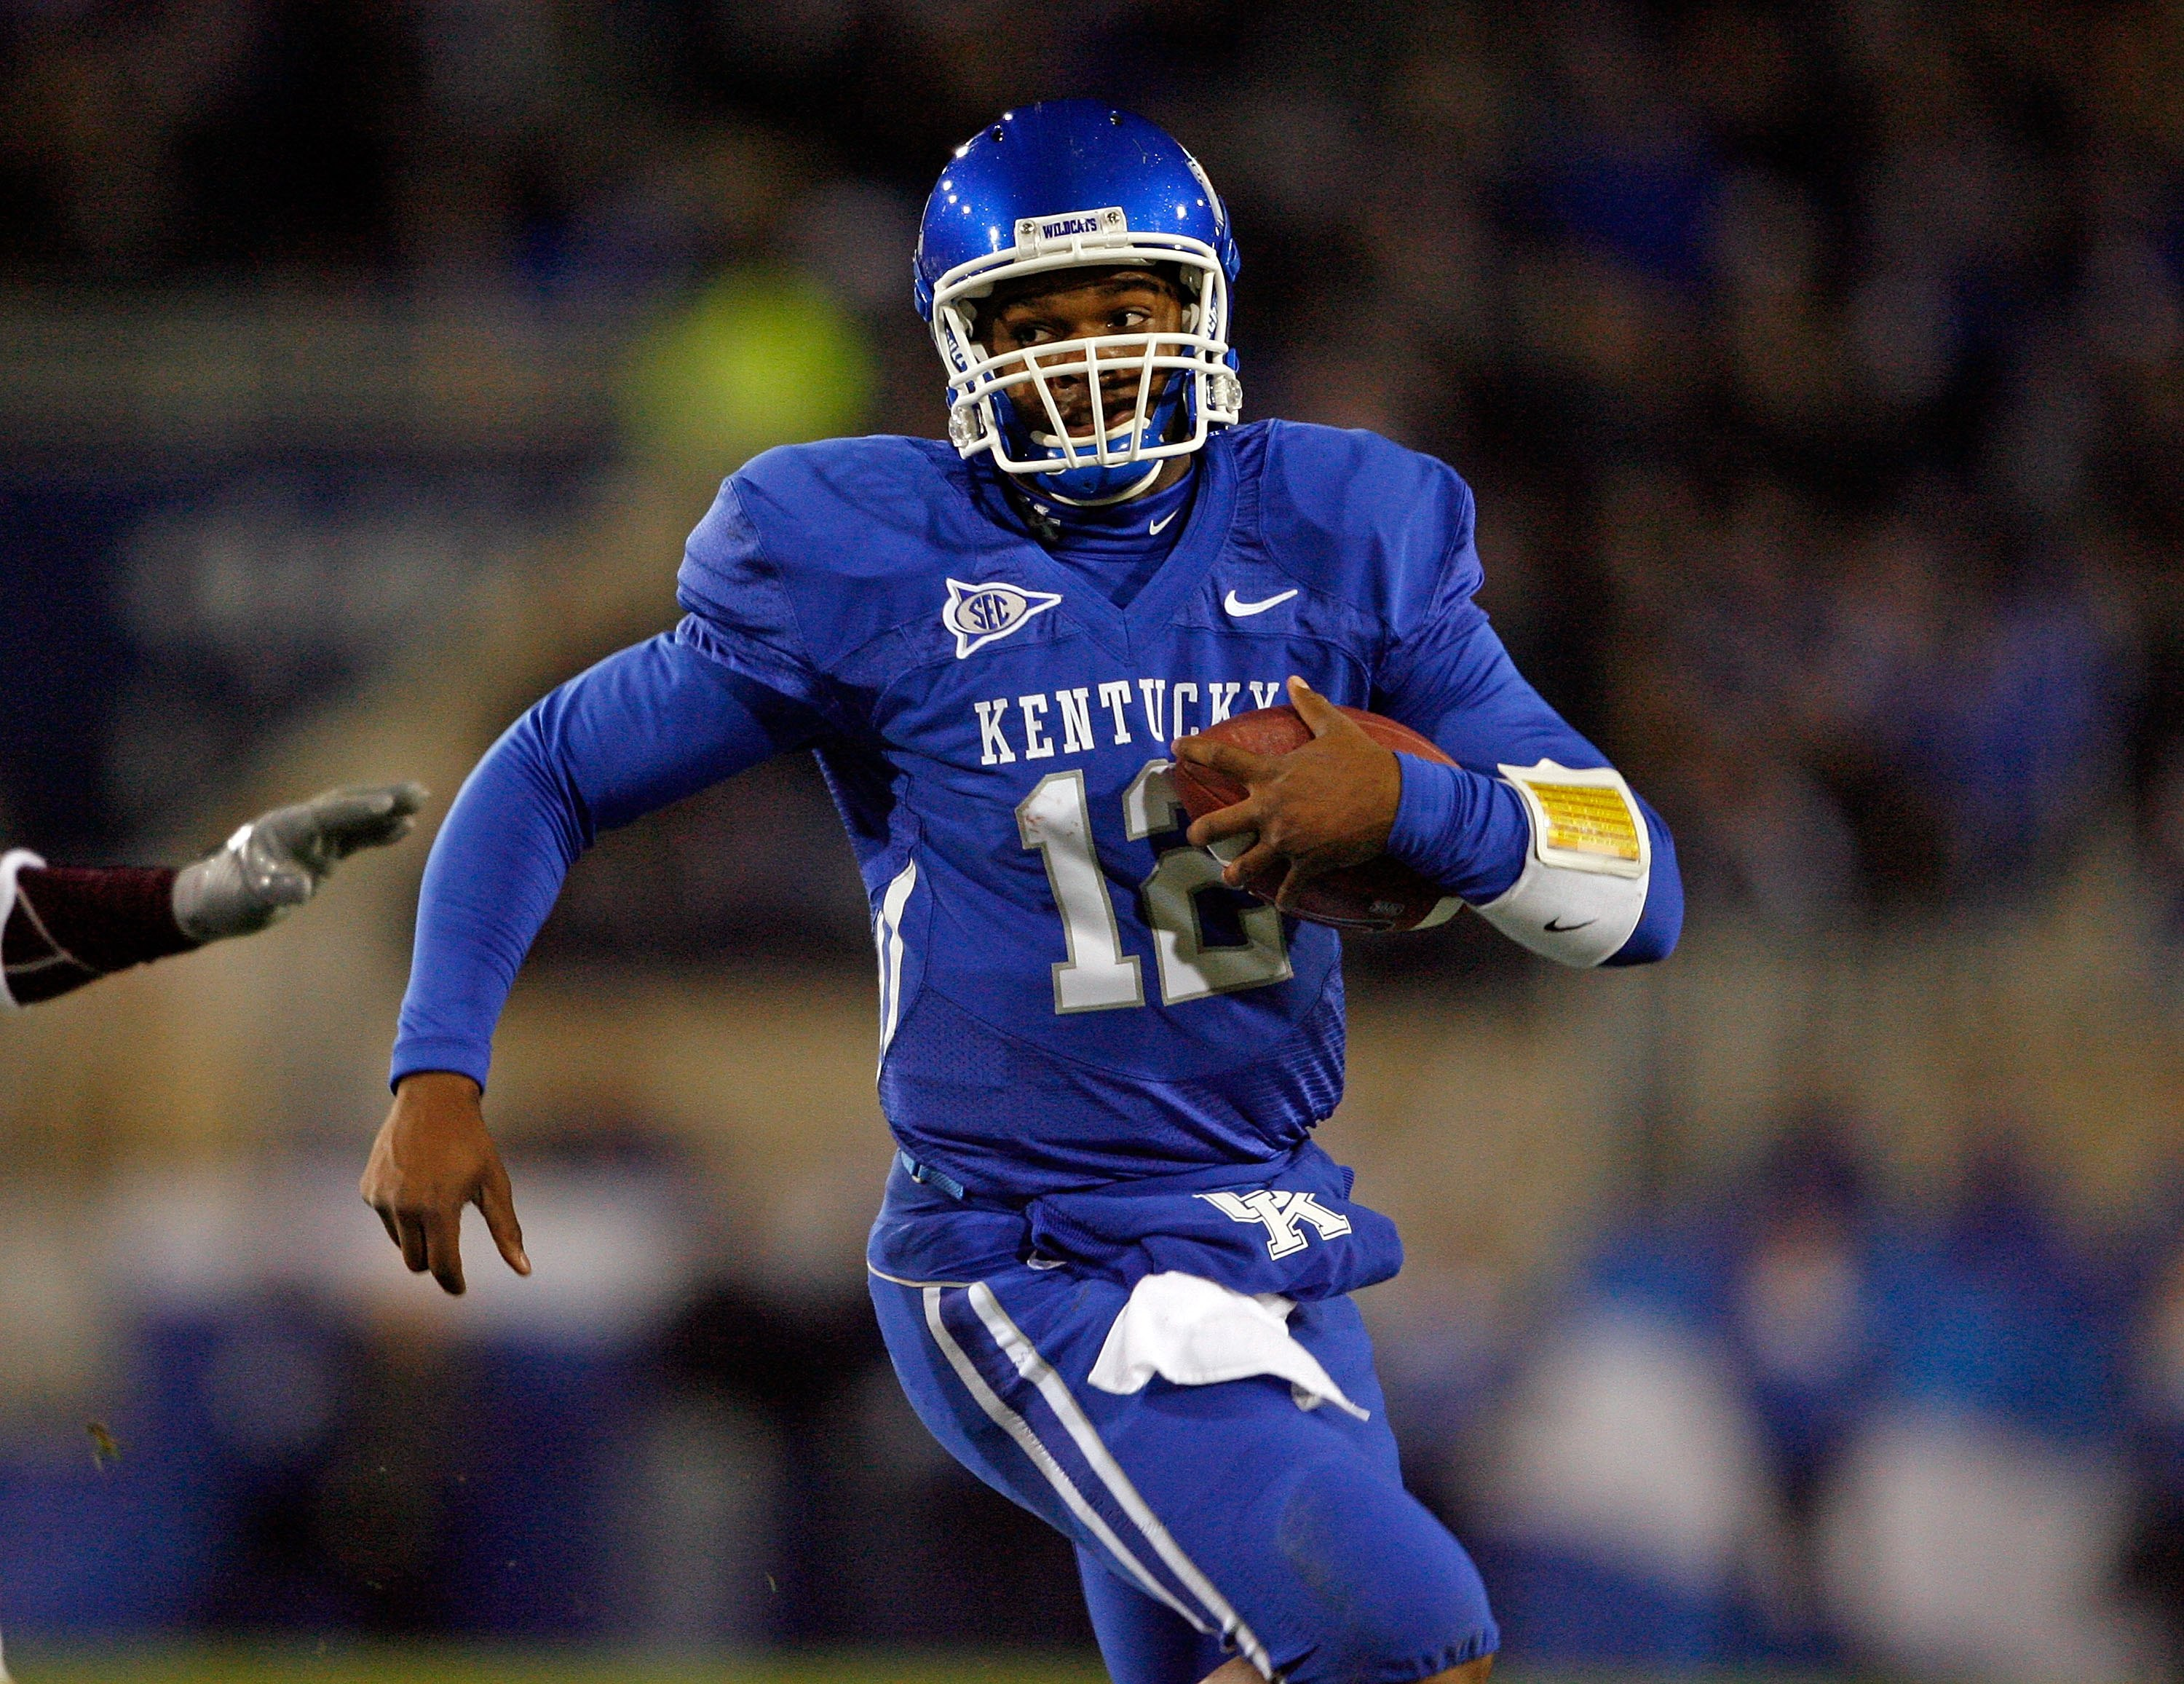 If Morgan Newton is running for his life this fall, the Cats are going to have some issues.